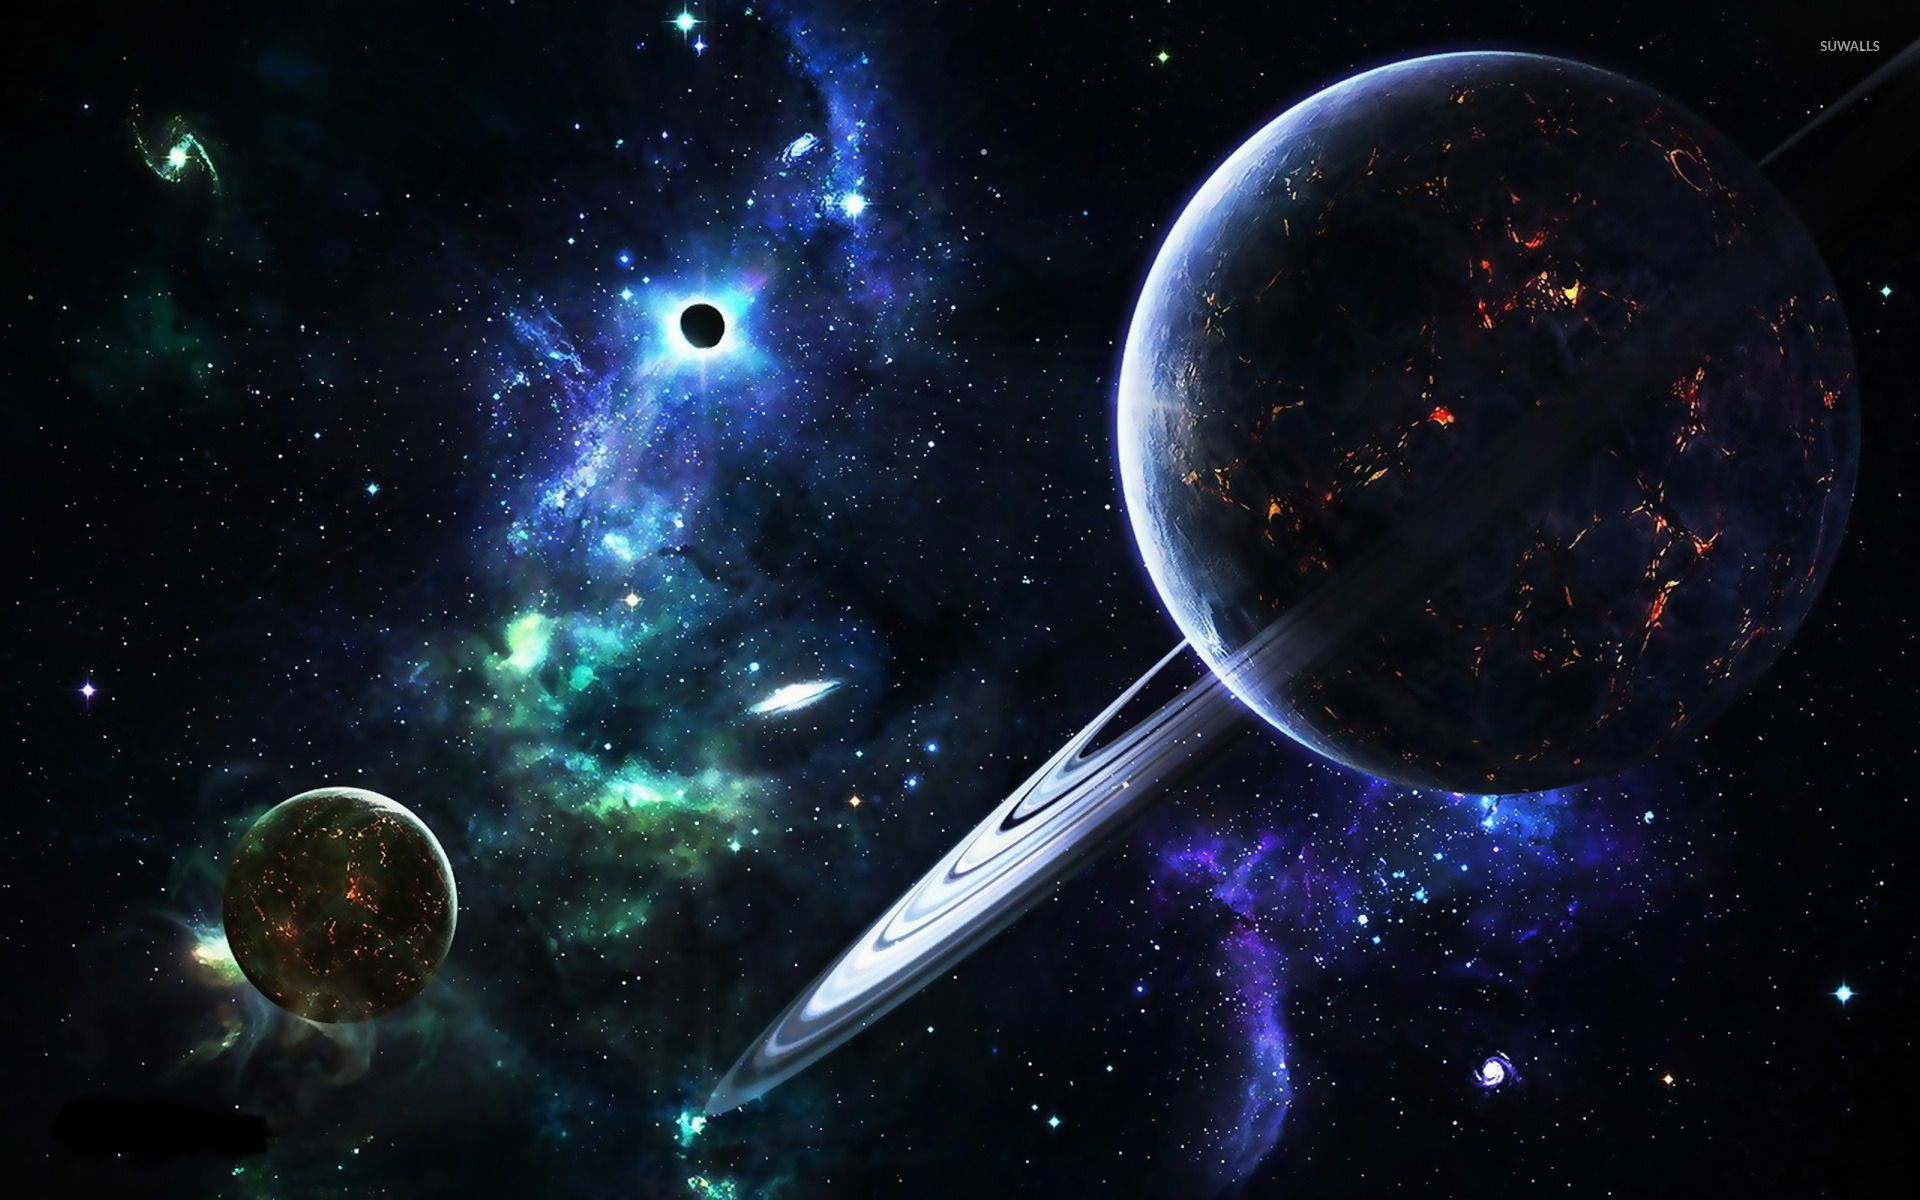 planets and galaxies wallpaper - fantasy wallpapers - #10872